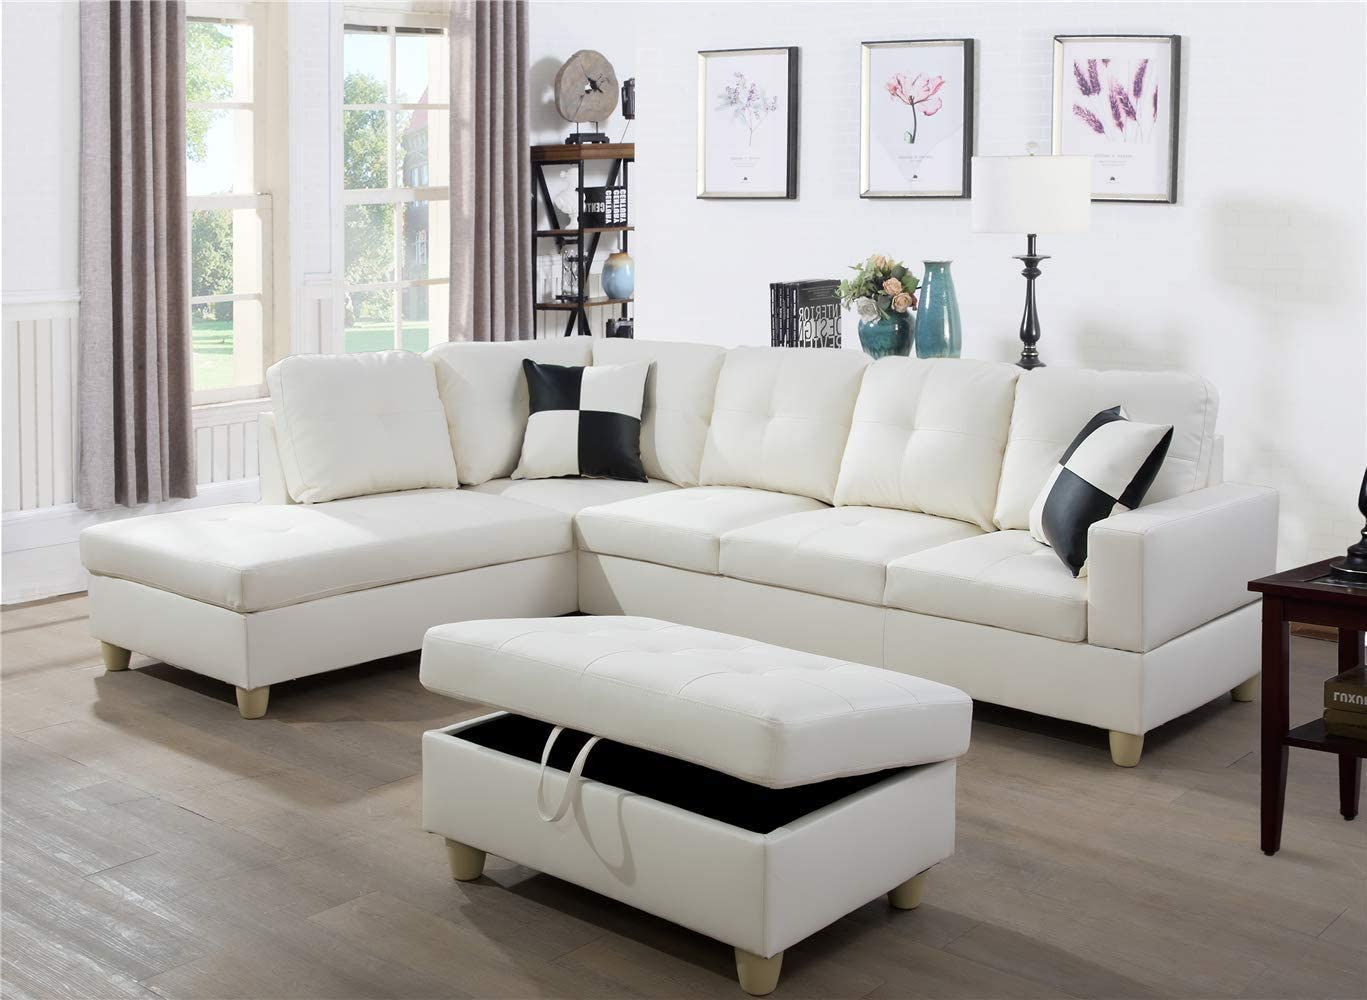 Ainehome Faux Leather 3 Piece Sectional Sofa Couch Set, L-Shaped Modern Sofa with Chaise Storage Ottoman and Pillows for Living Room Furniture, Left Hand Facing Sectional Sofa Set White